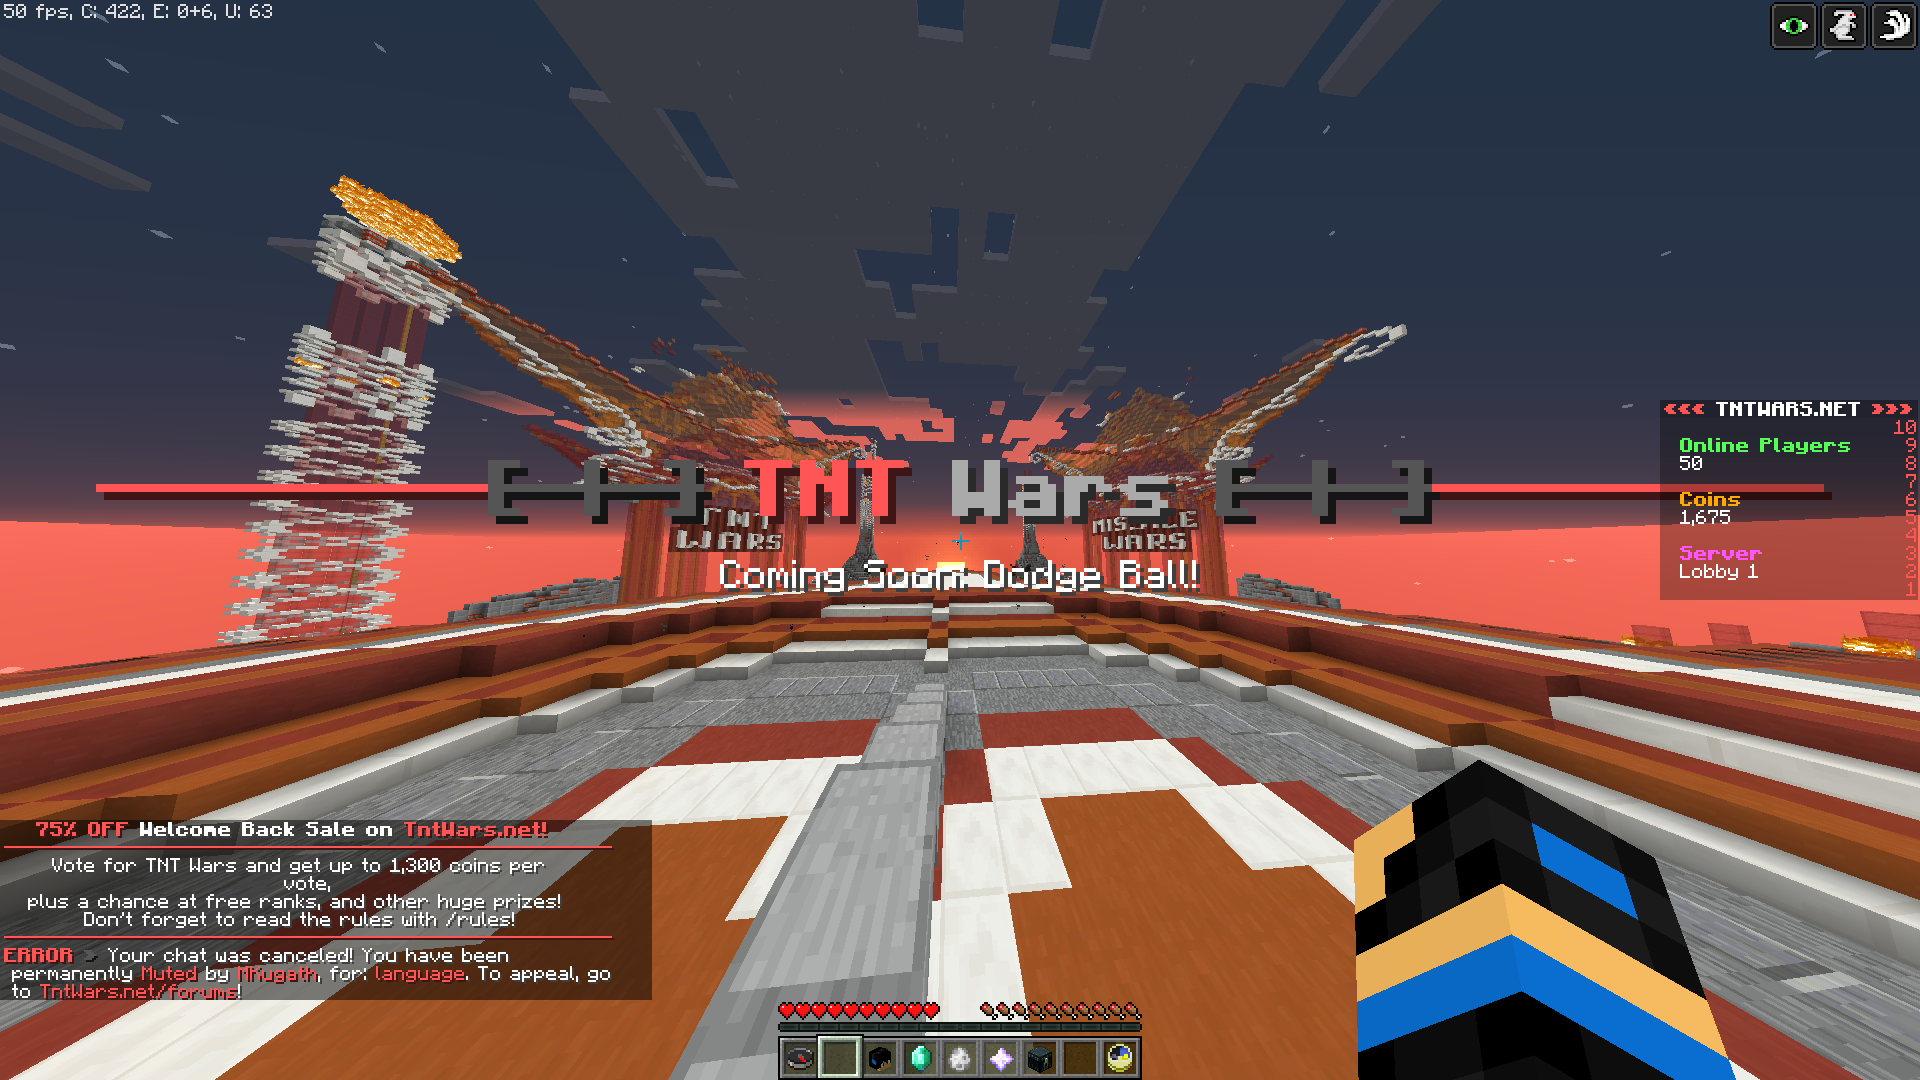 TNT Wars Server - PC Servers - Servers: Java Edition